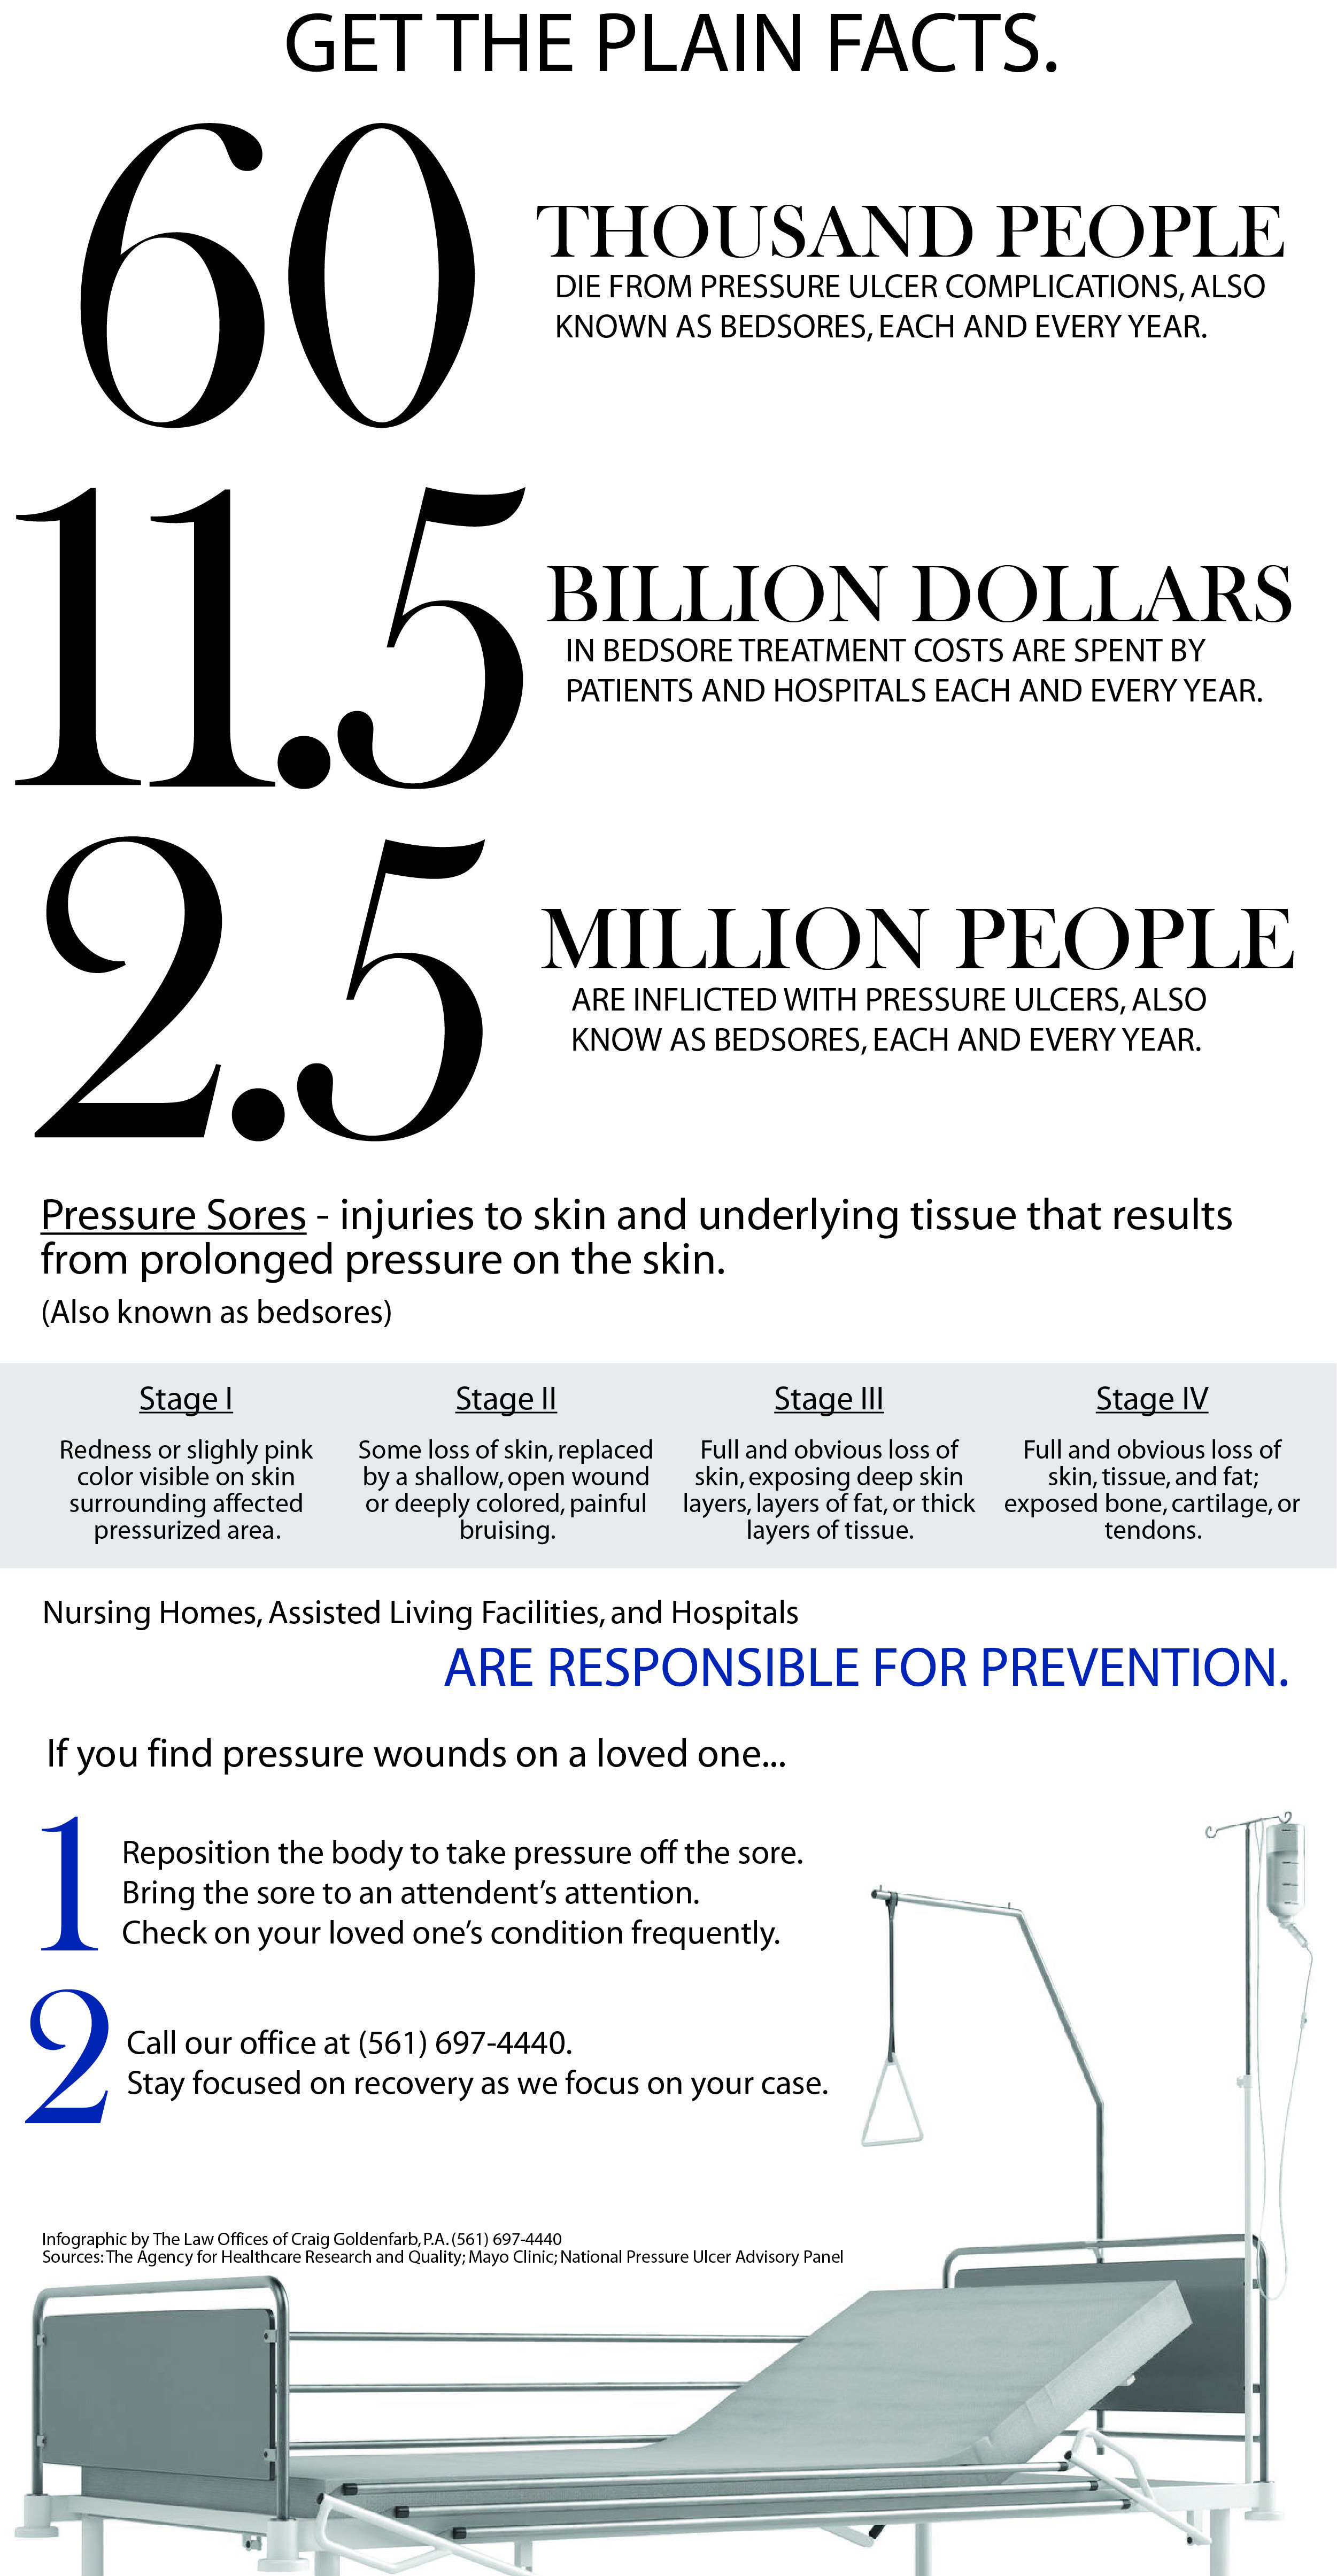 bedsores get the plain facts infosheet bedsores infographic